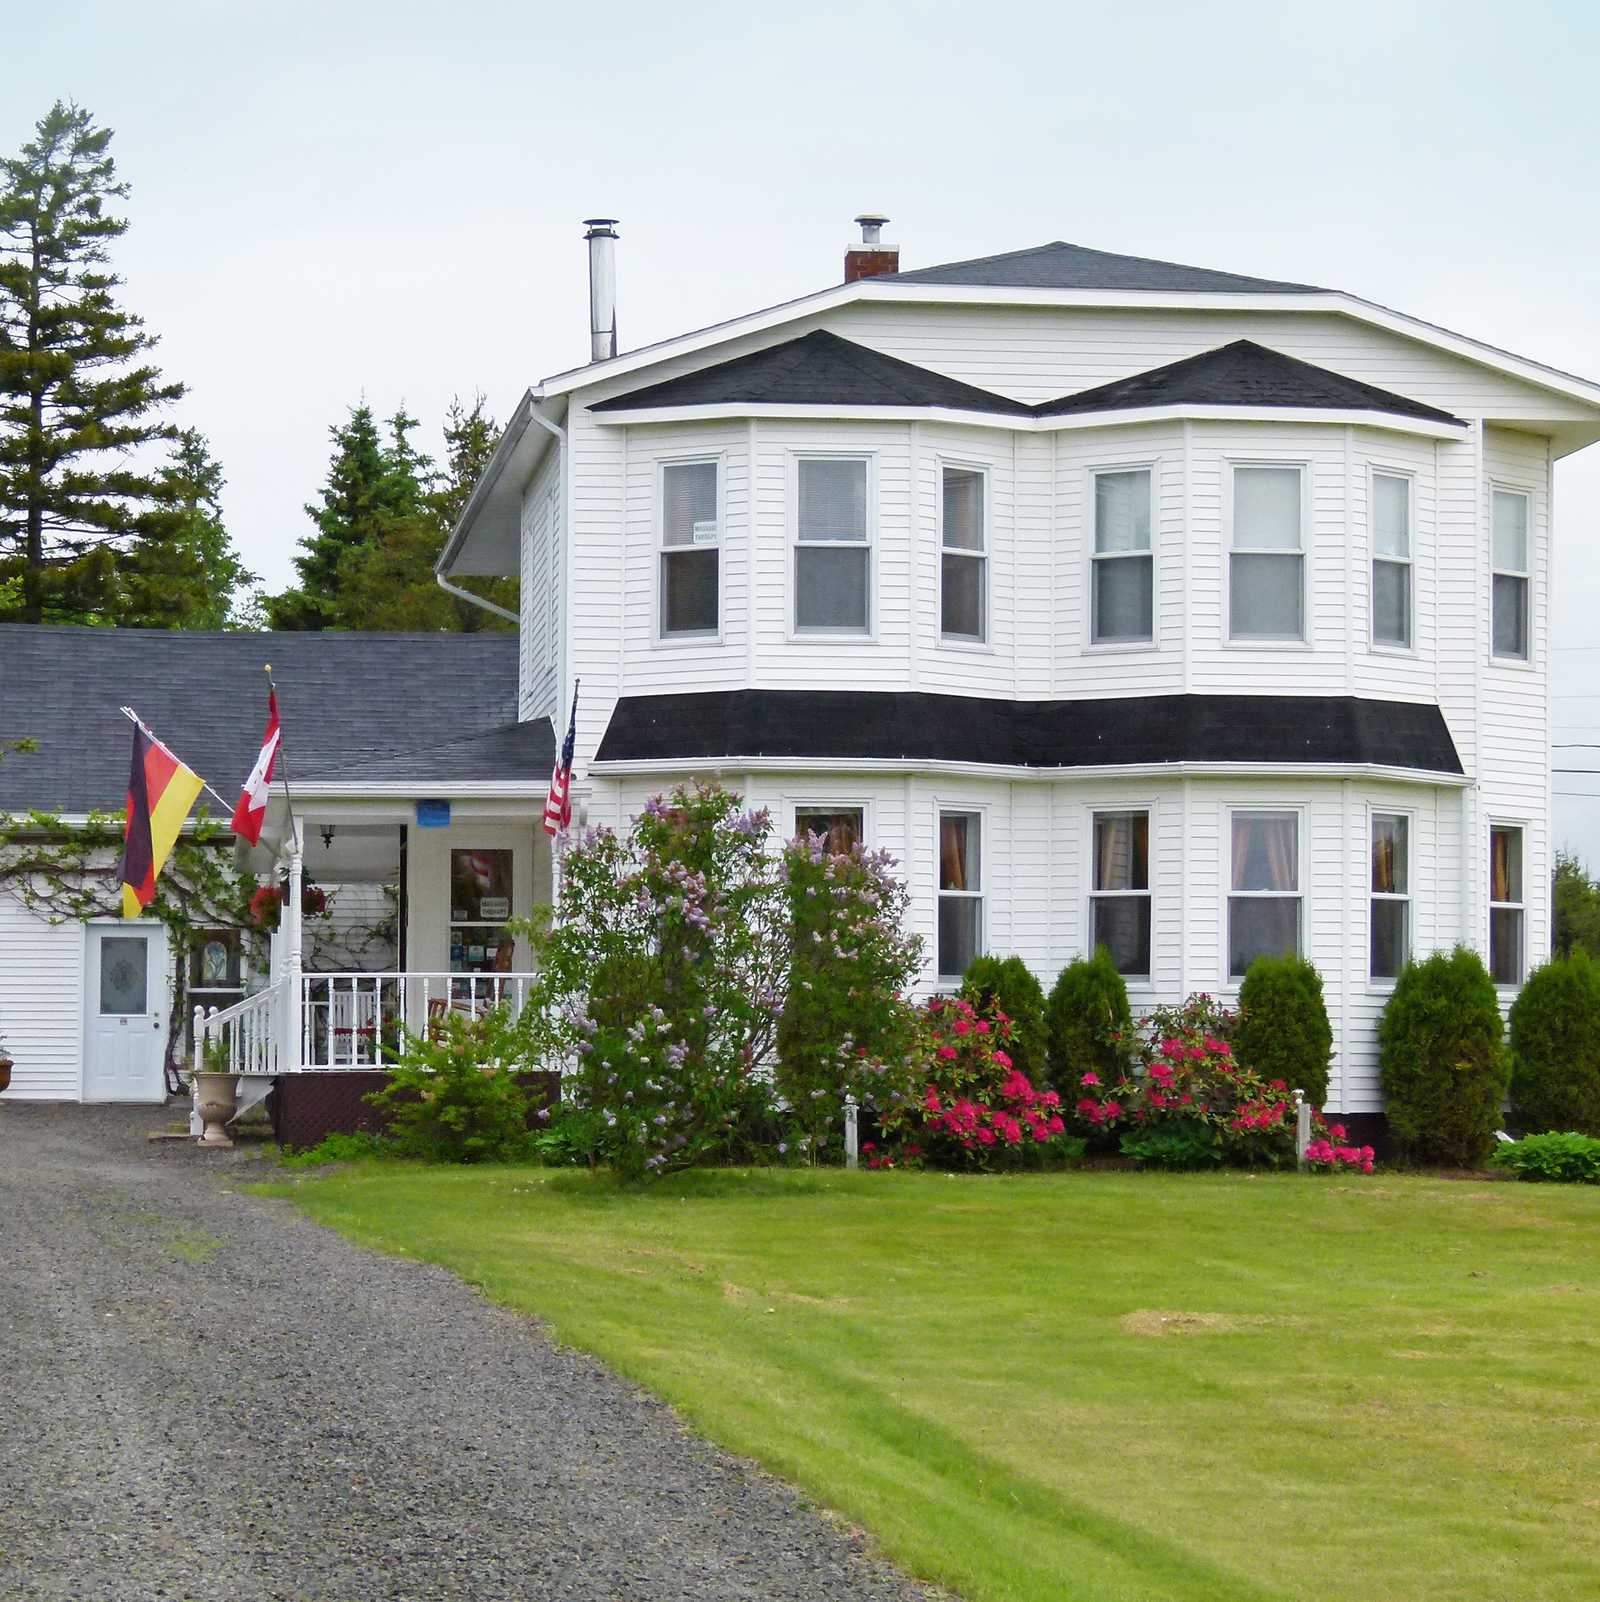 The Parrsboro Mansion